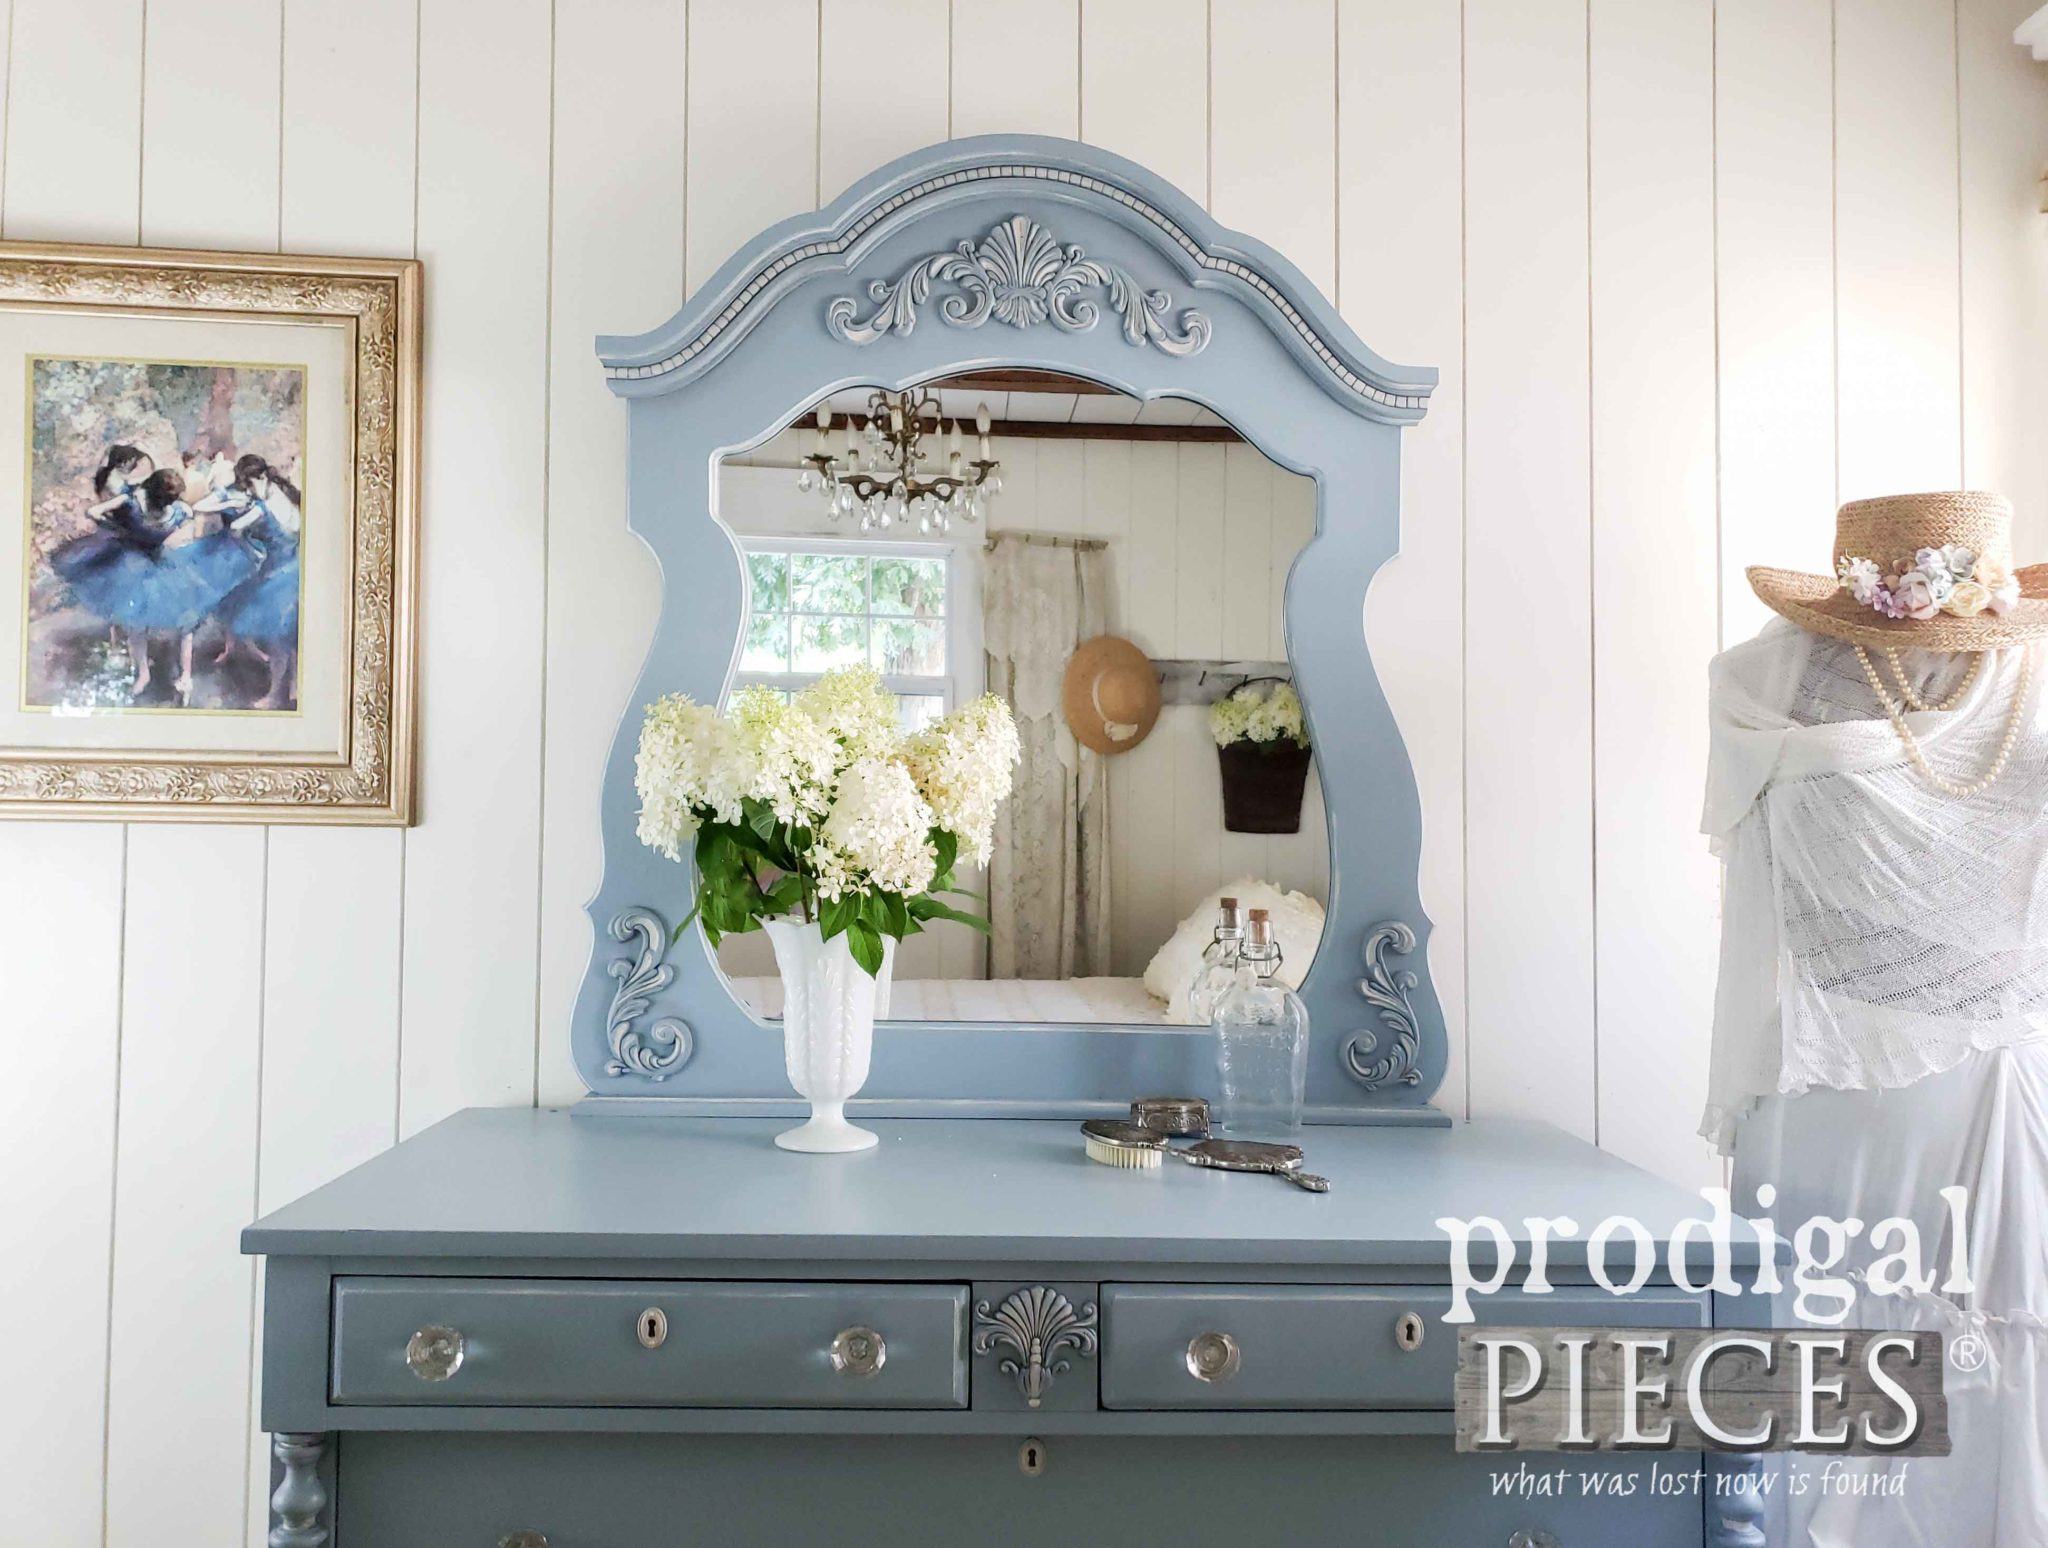 Gorgeous Blue Mirrored Dresser Set by Larissa of Prodigal Pieces | prodigalpieces.com